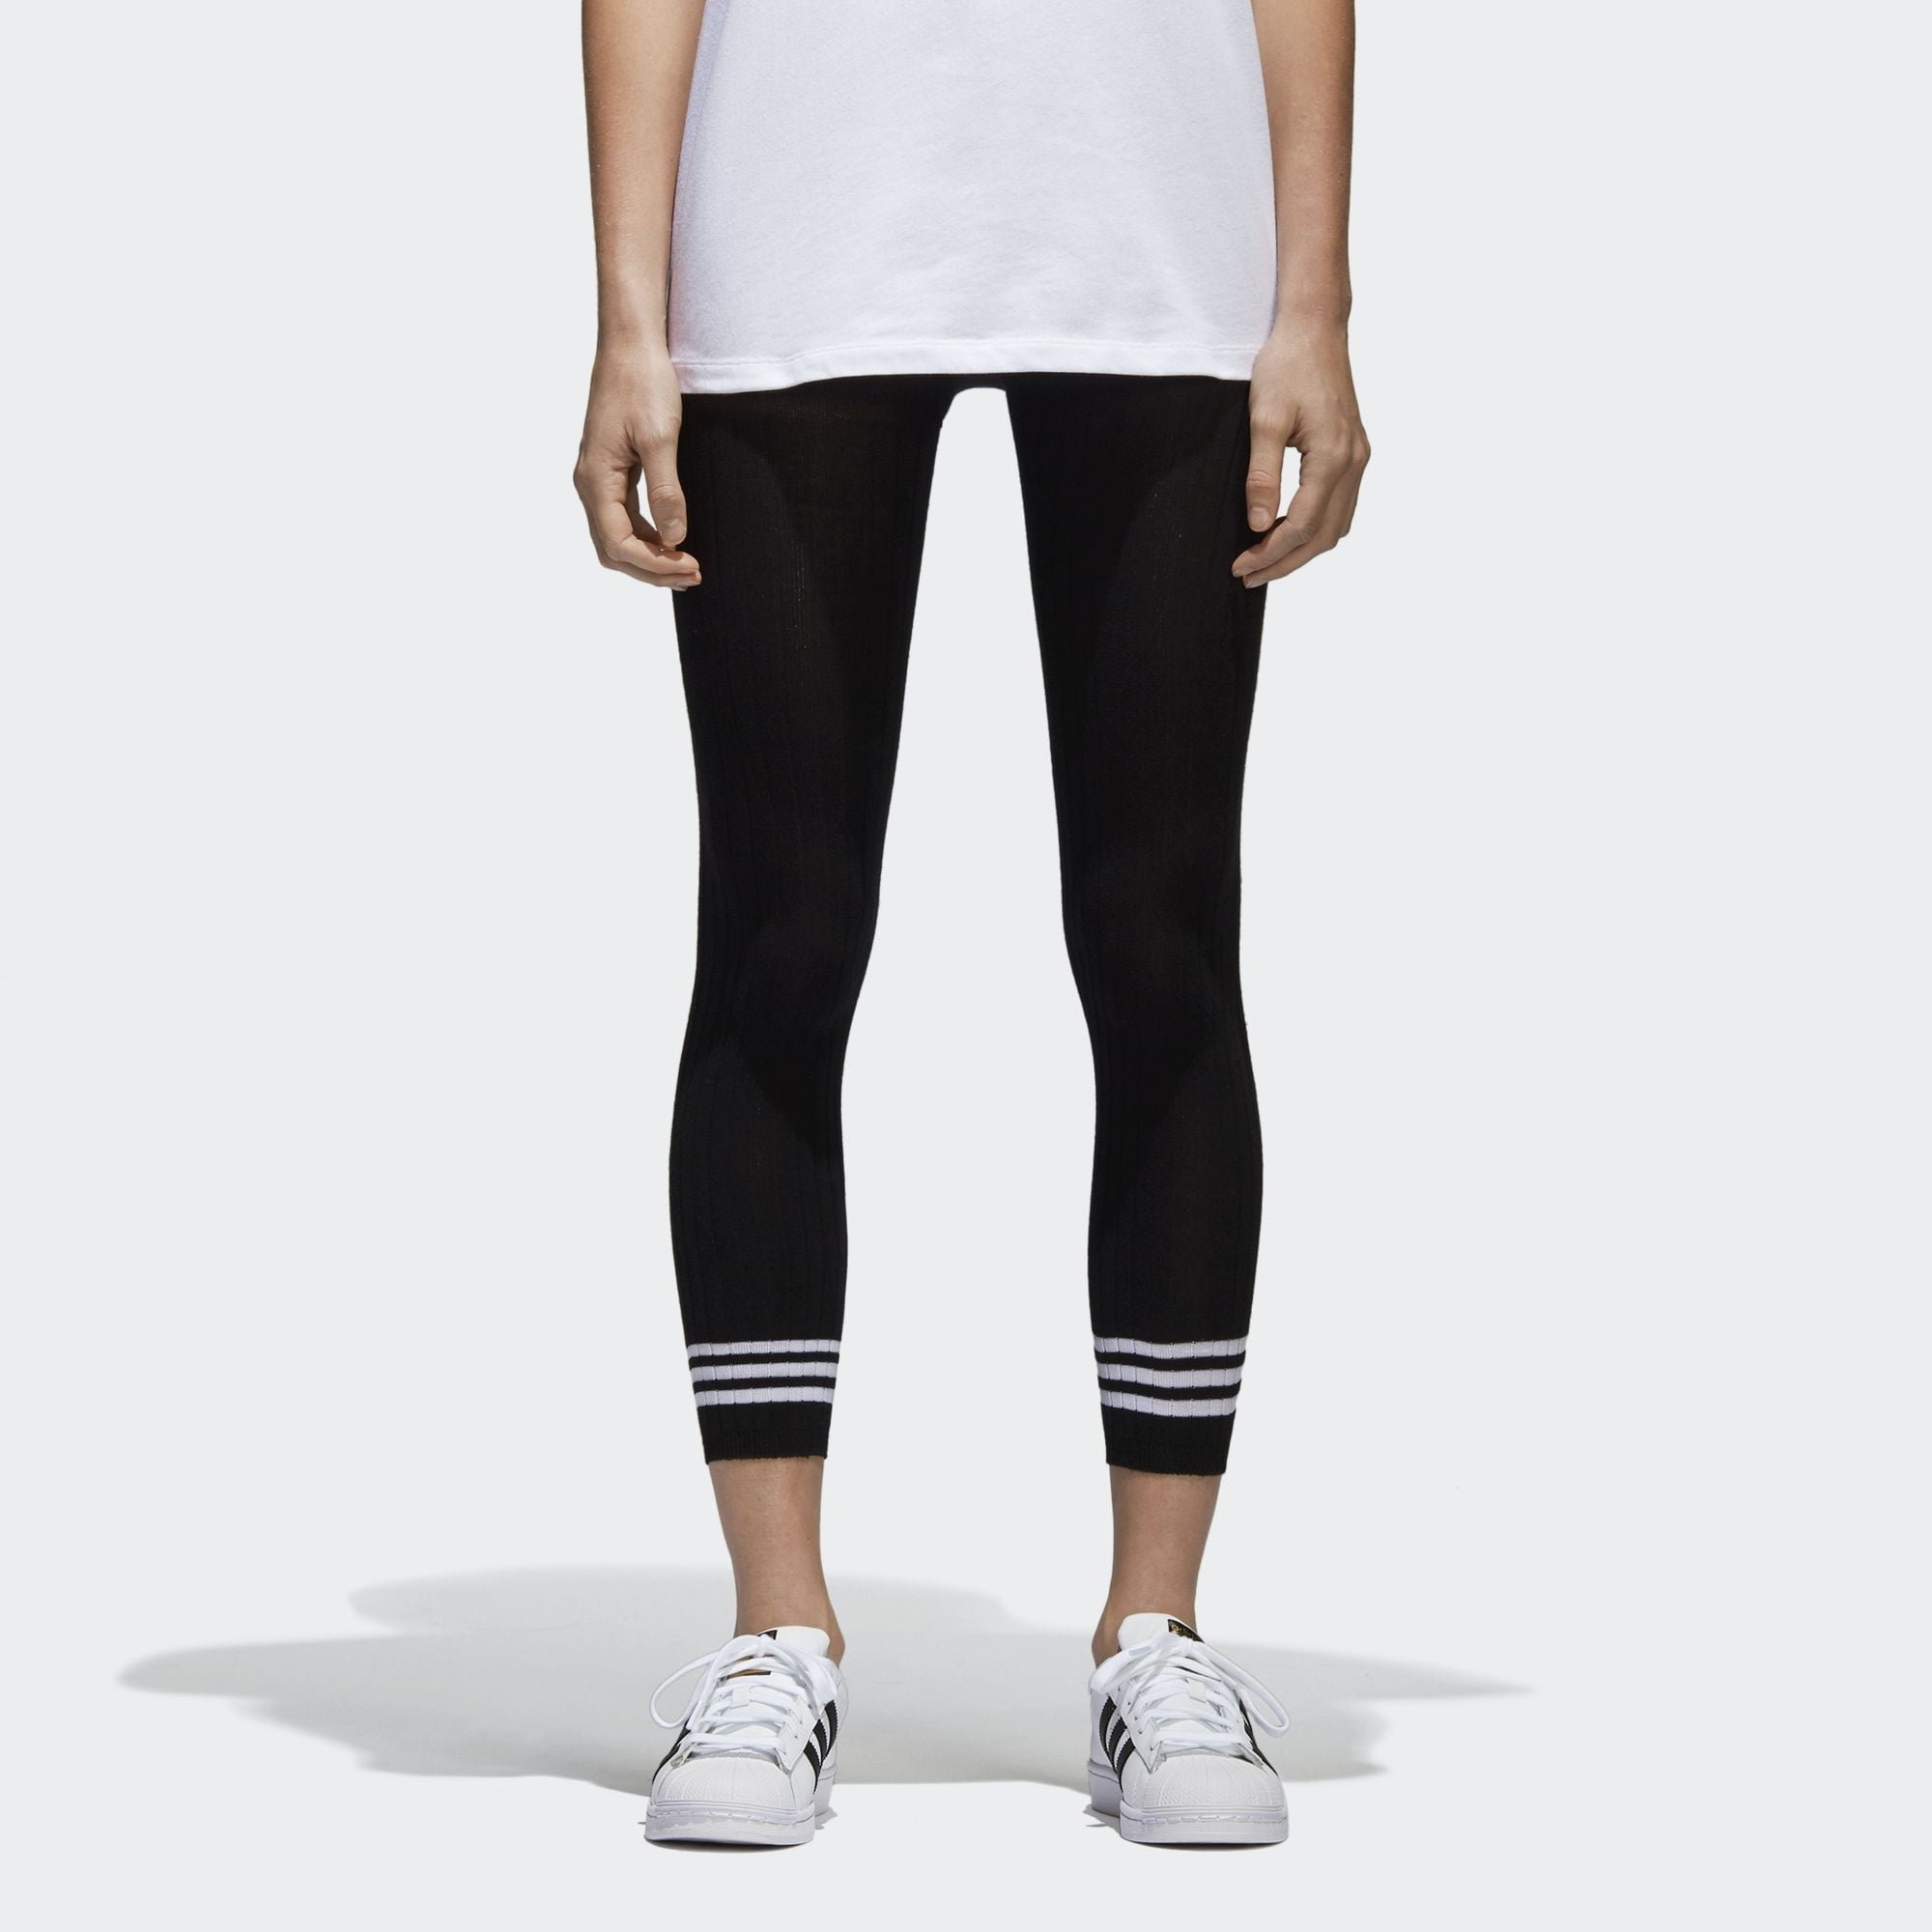 e62cc30dbbfe3e Adidas Originals Womens Black 3-Stripes Tights | BR9623